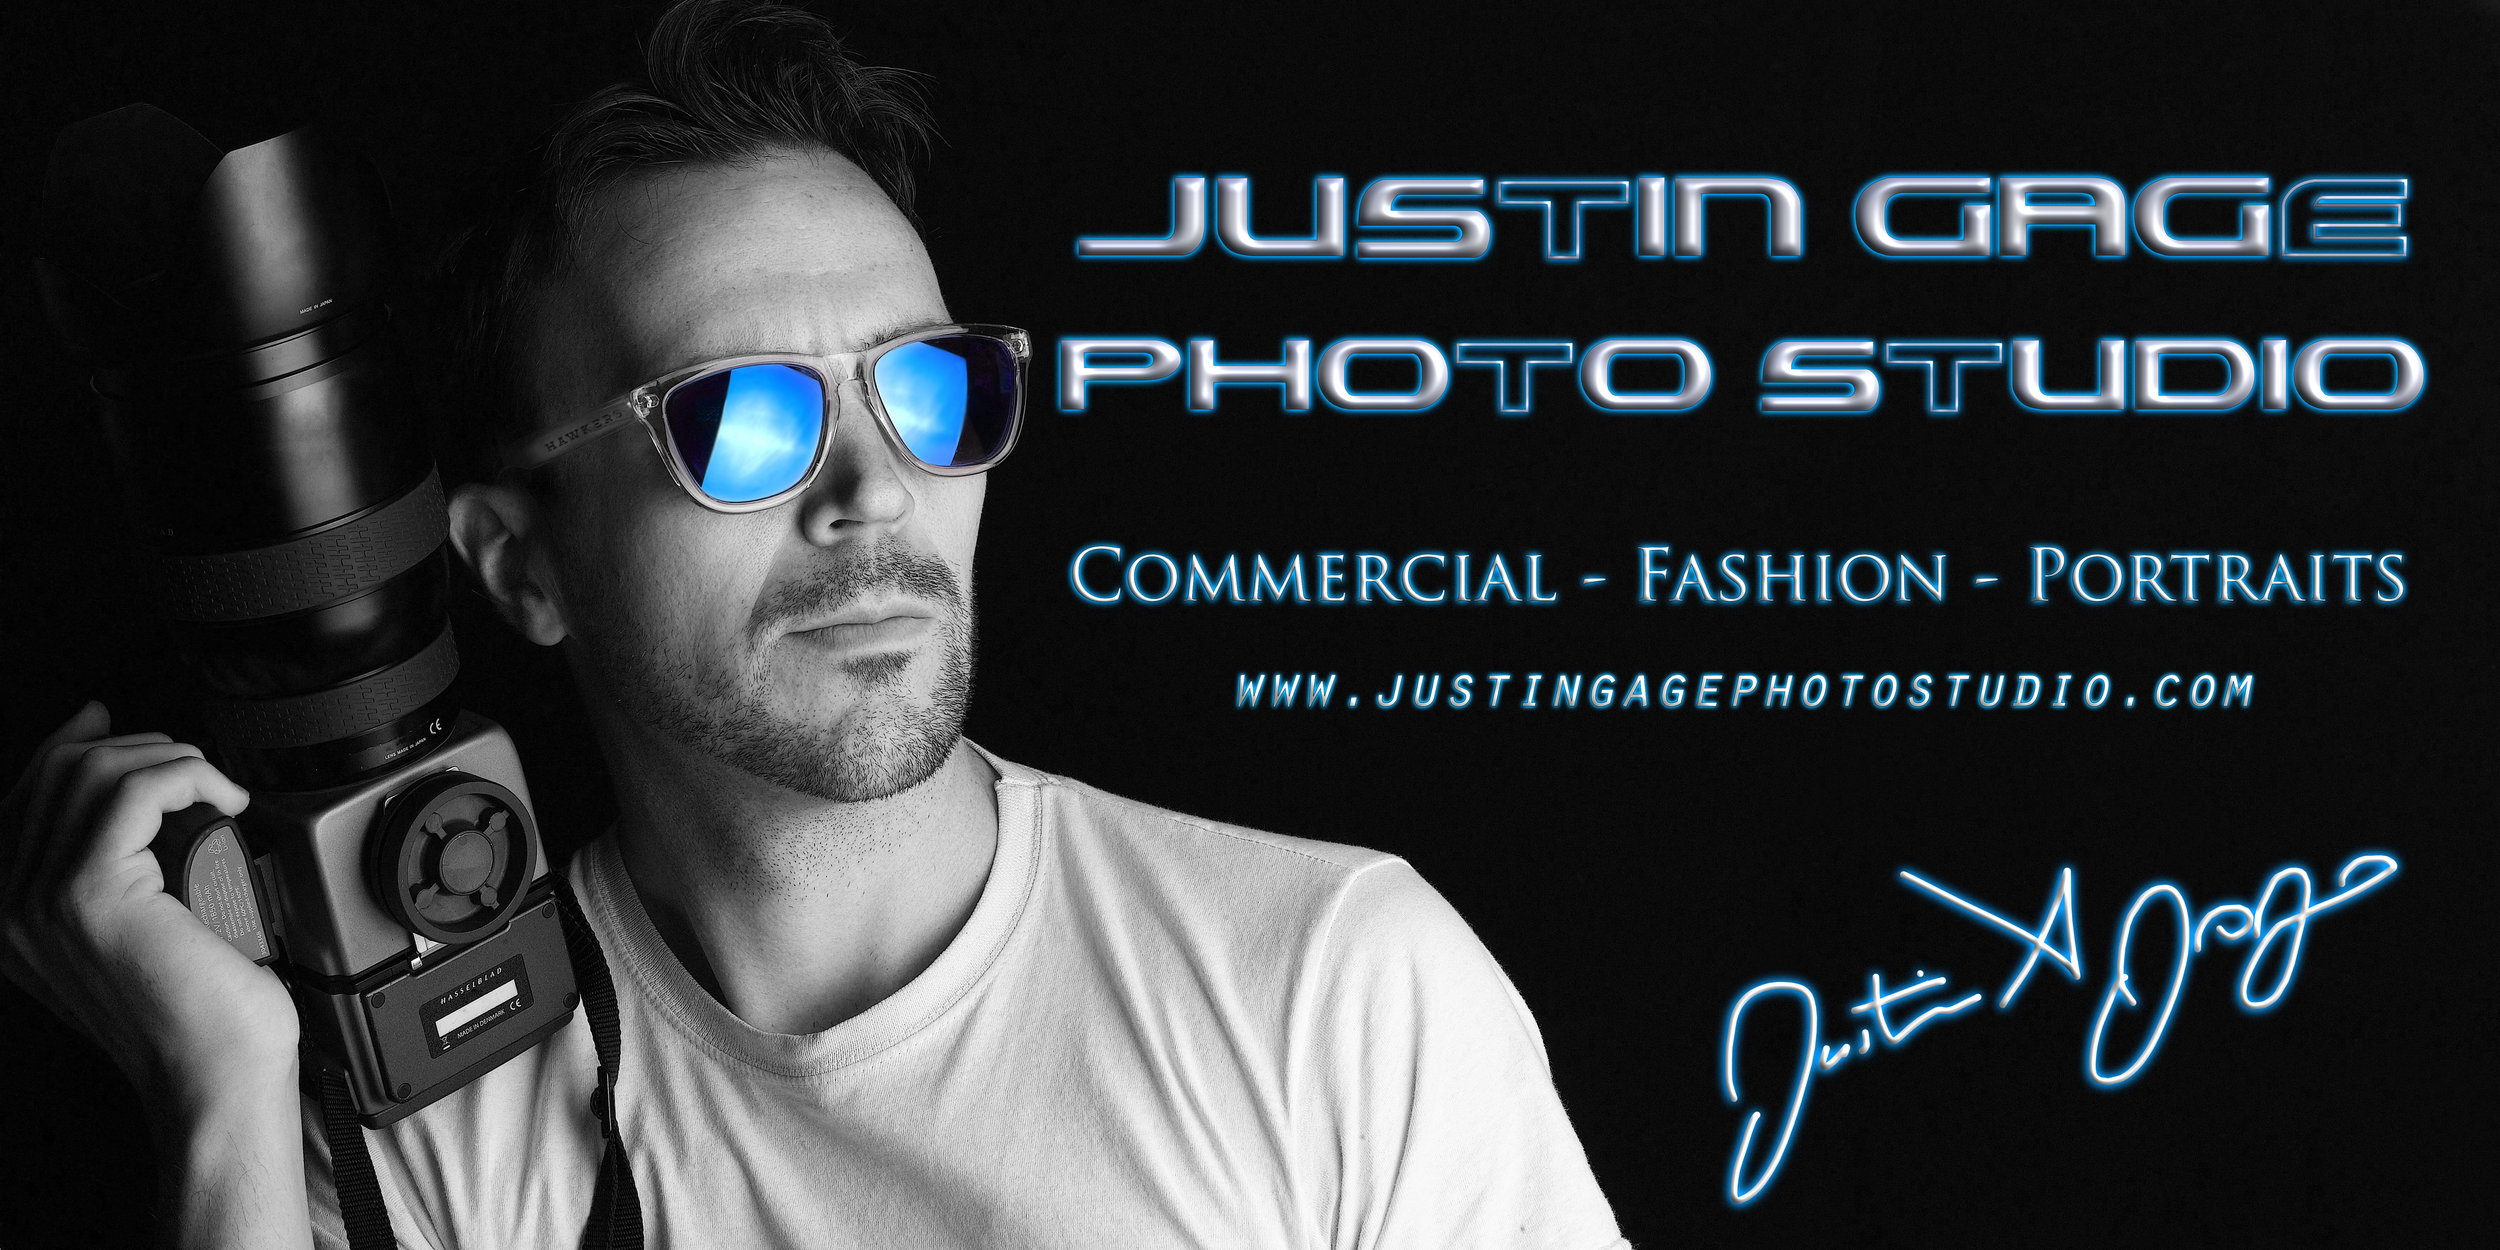 photography contact info